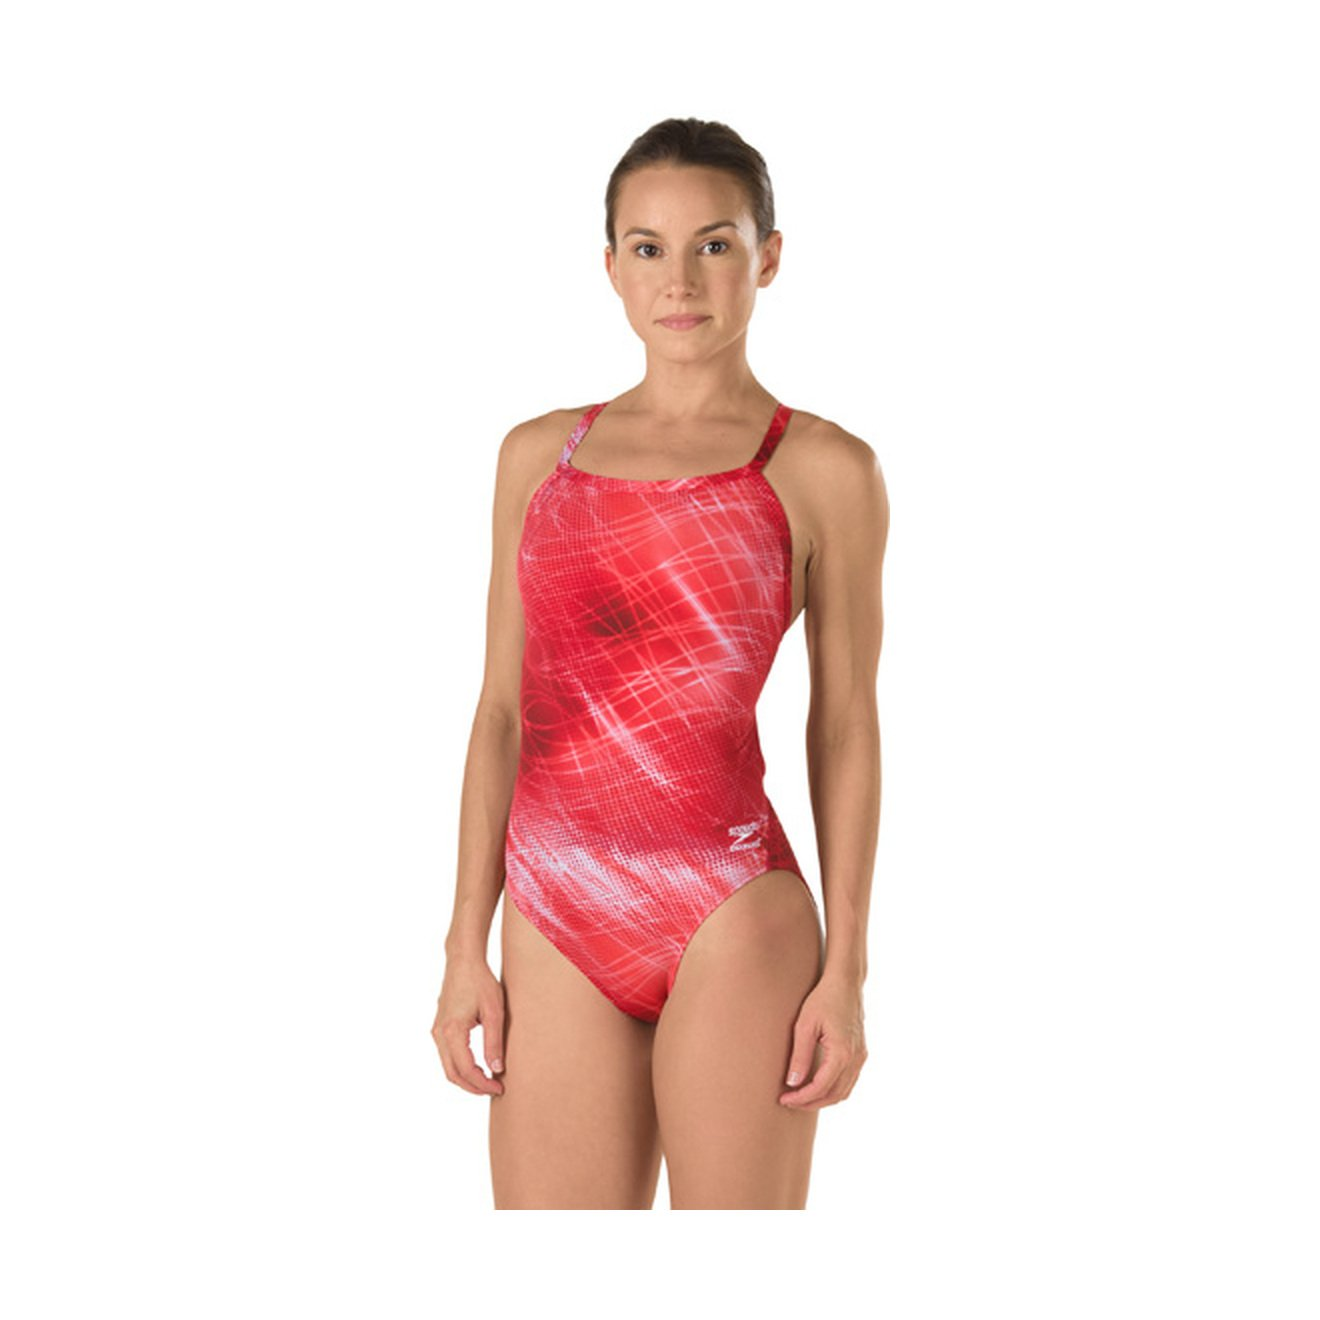 Ice Flow Drill Back Swimsuit Speedo Men/'s and Women/'s Swimwear Speedo Womens Endurance